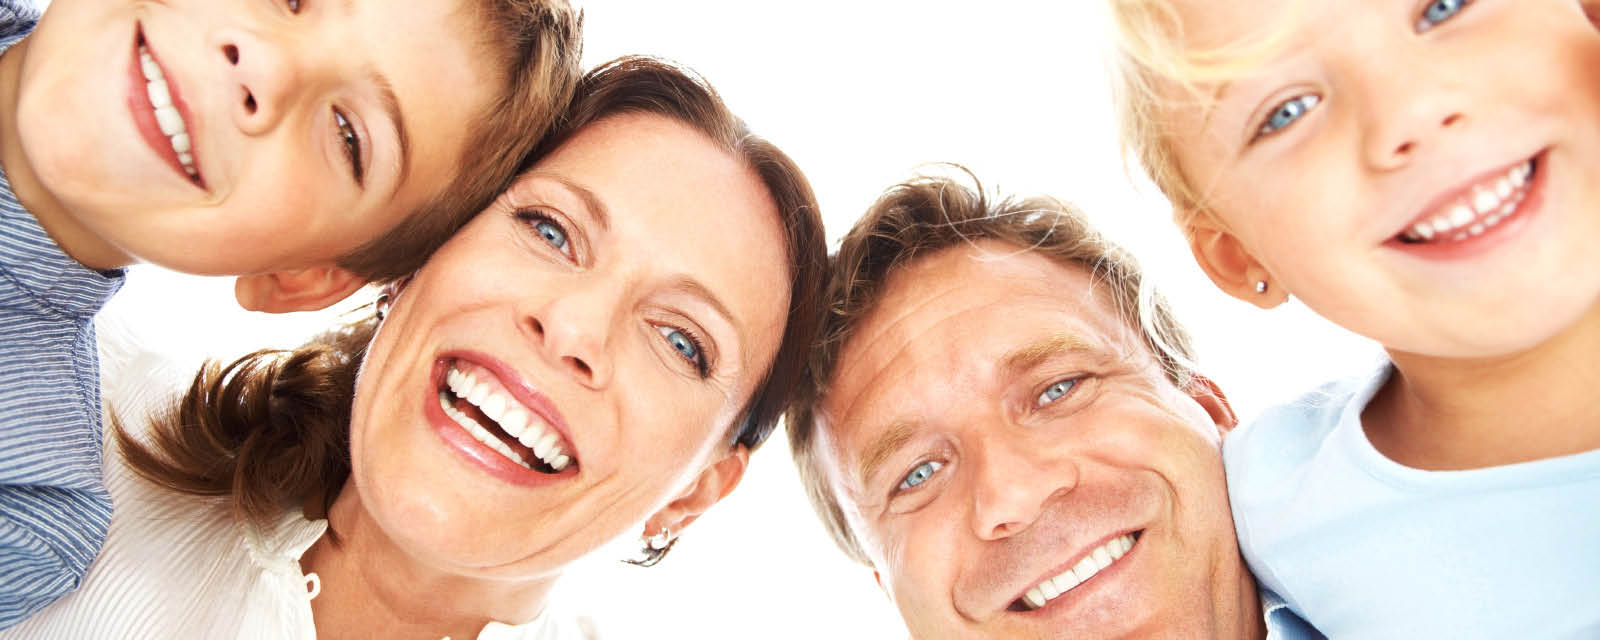 group of smiles dentistry implants & orthodontics in arlington, tx